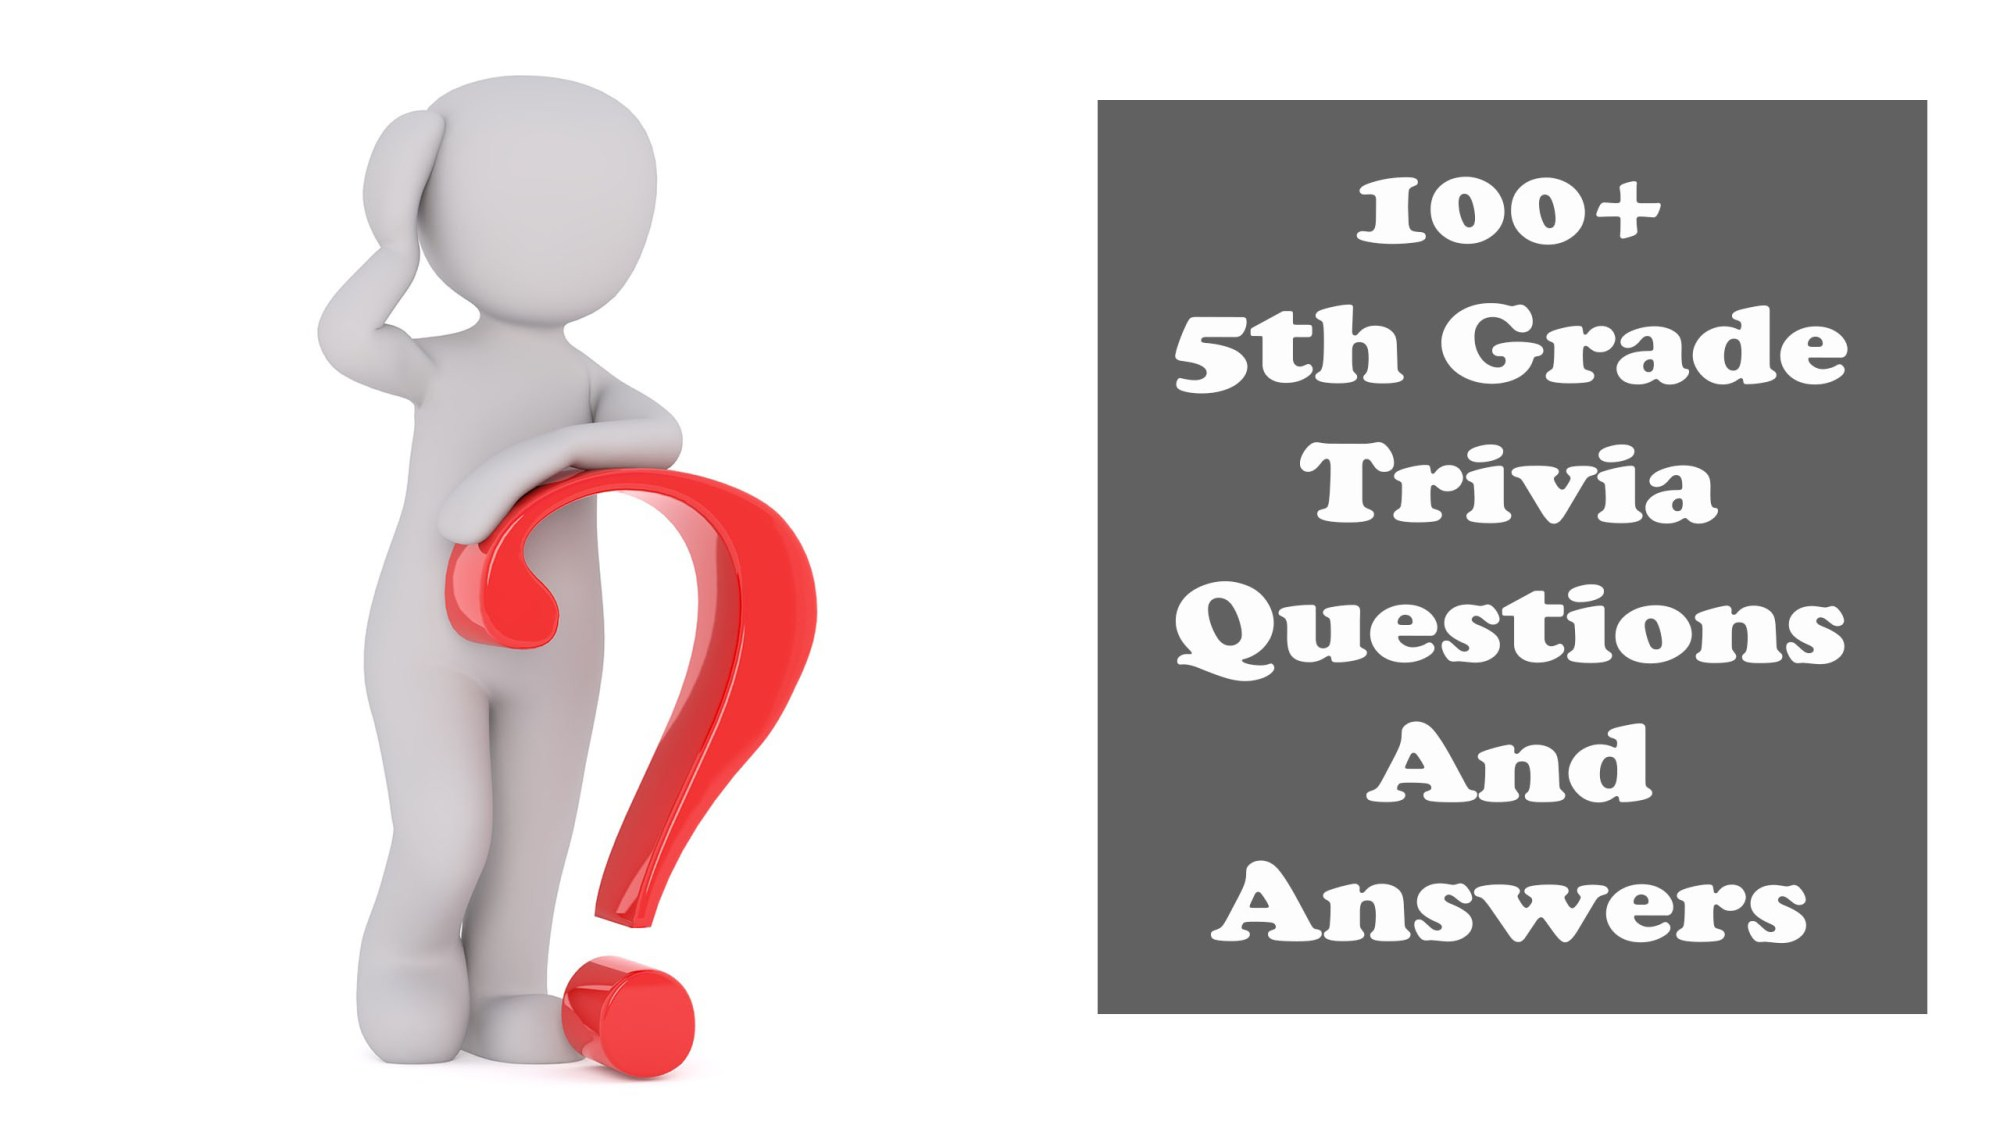 hight resolution of 100+ 5th grade trivia questions and answers For Students